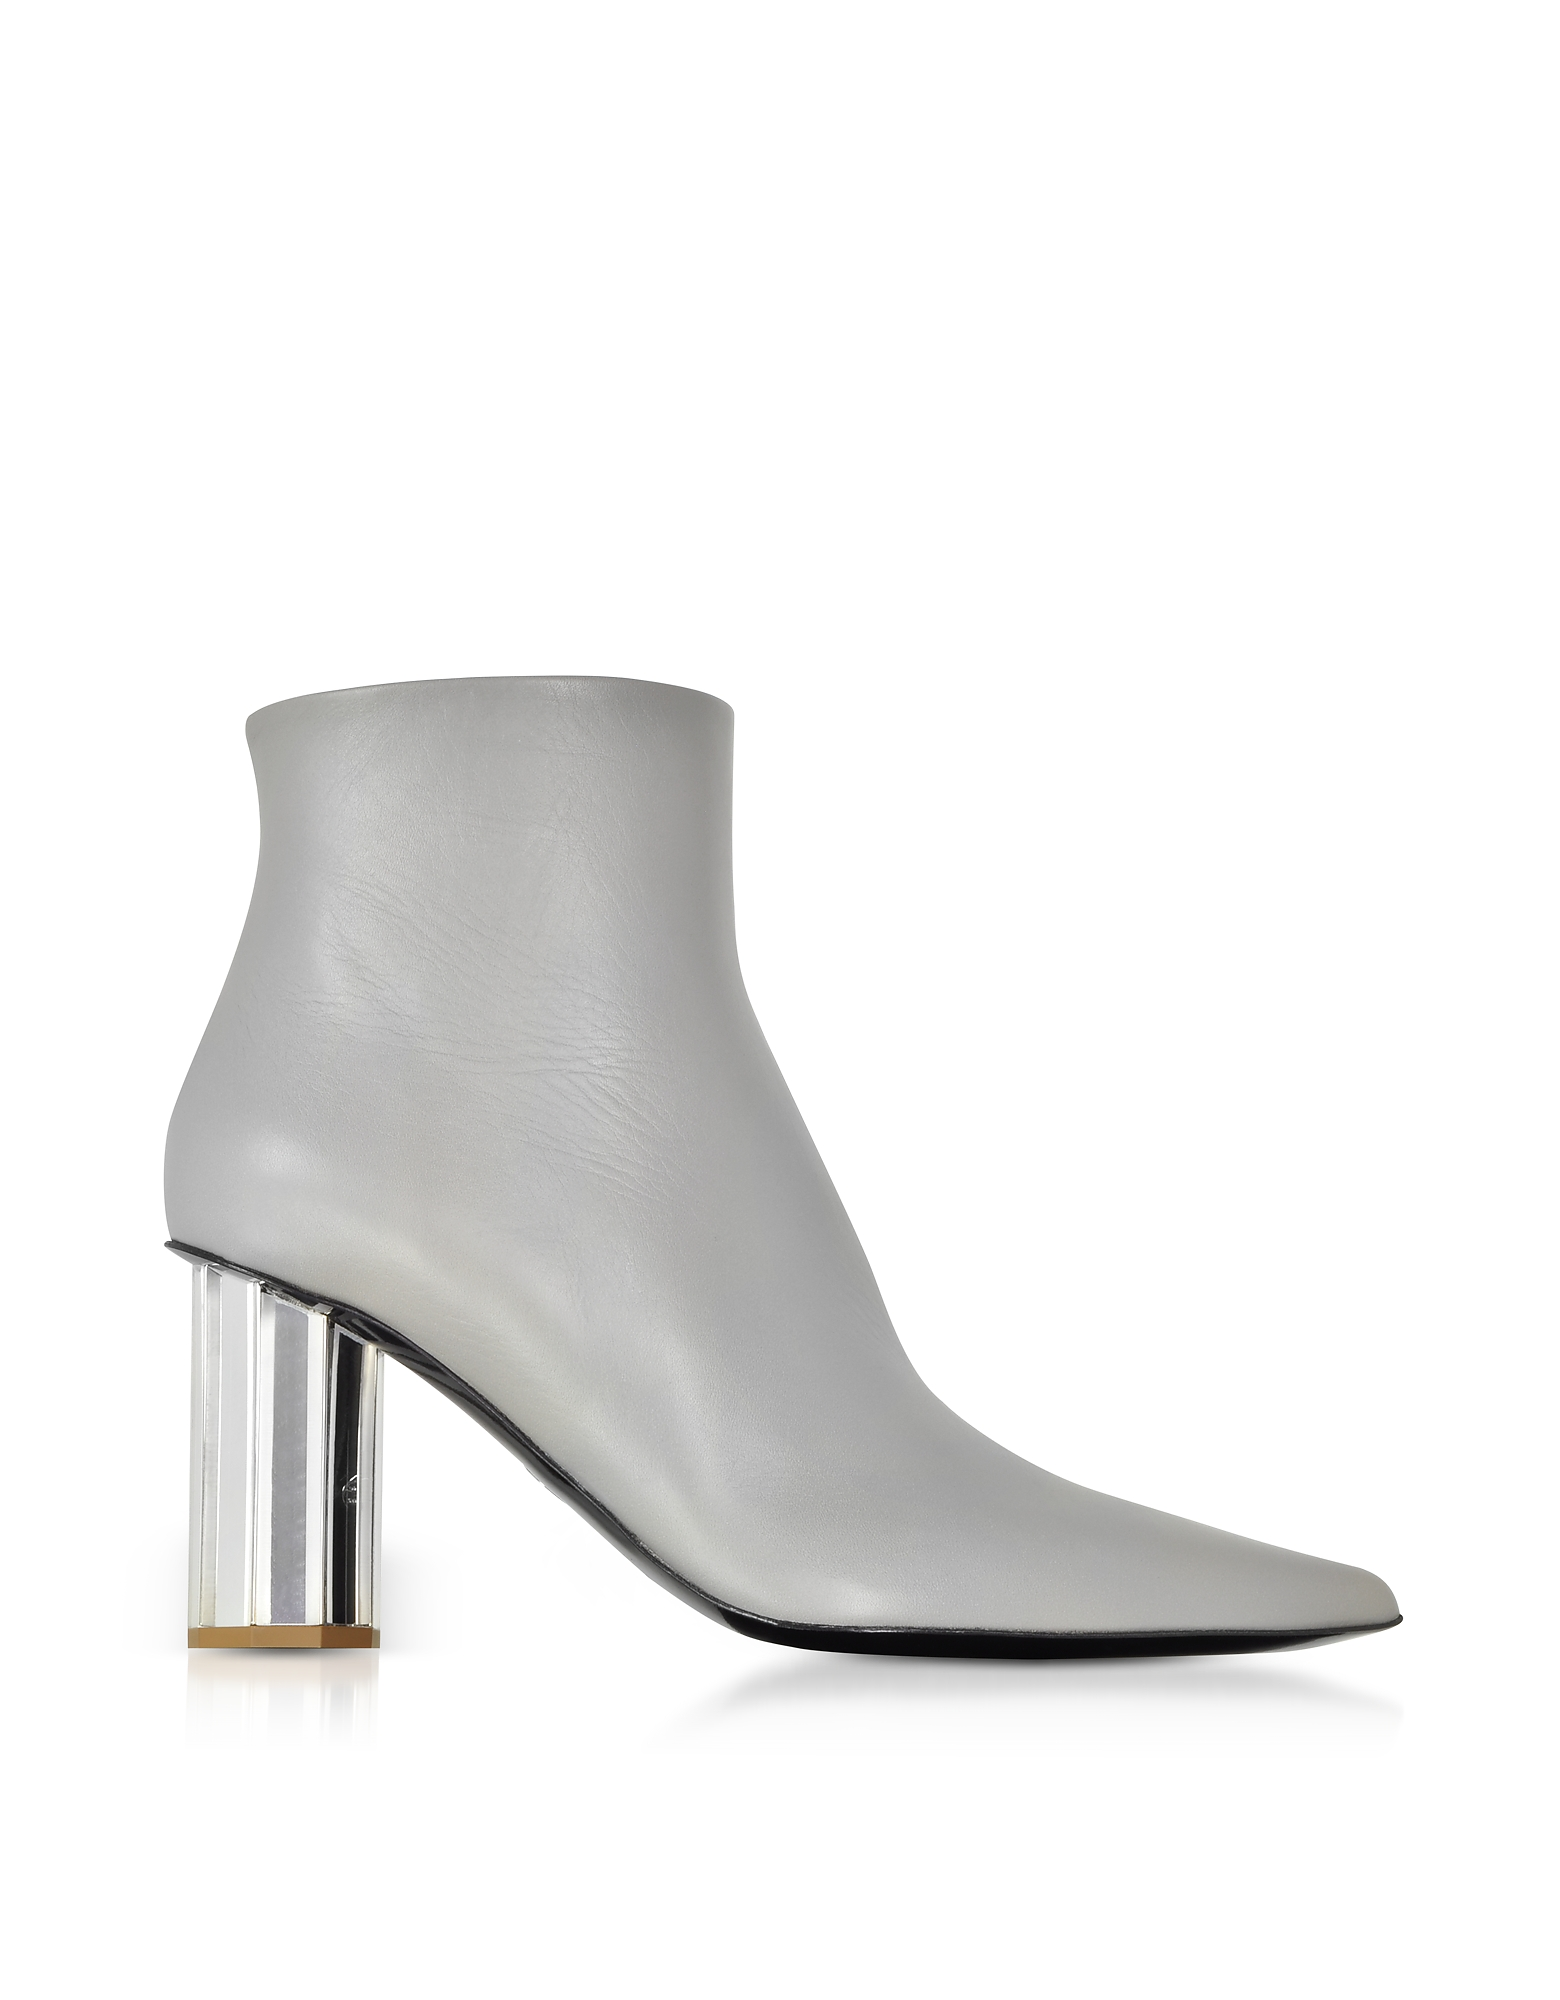 Proenza Schouler Shoes, Taupe Gray Leather Mirror Heel Boots